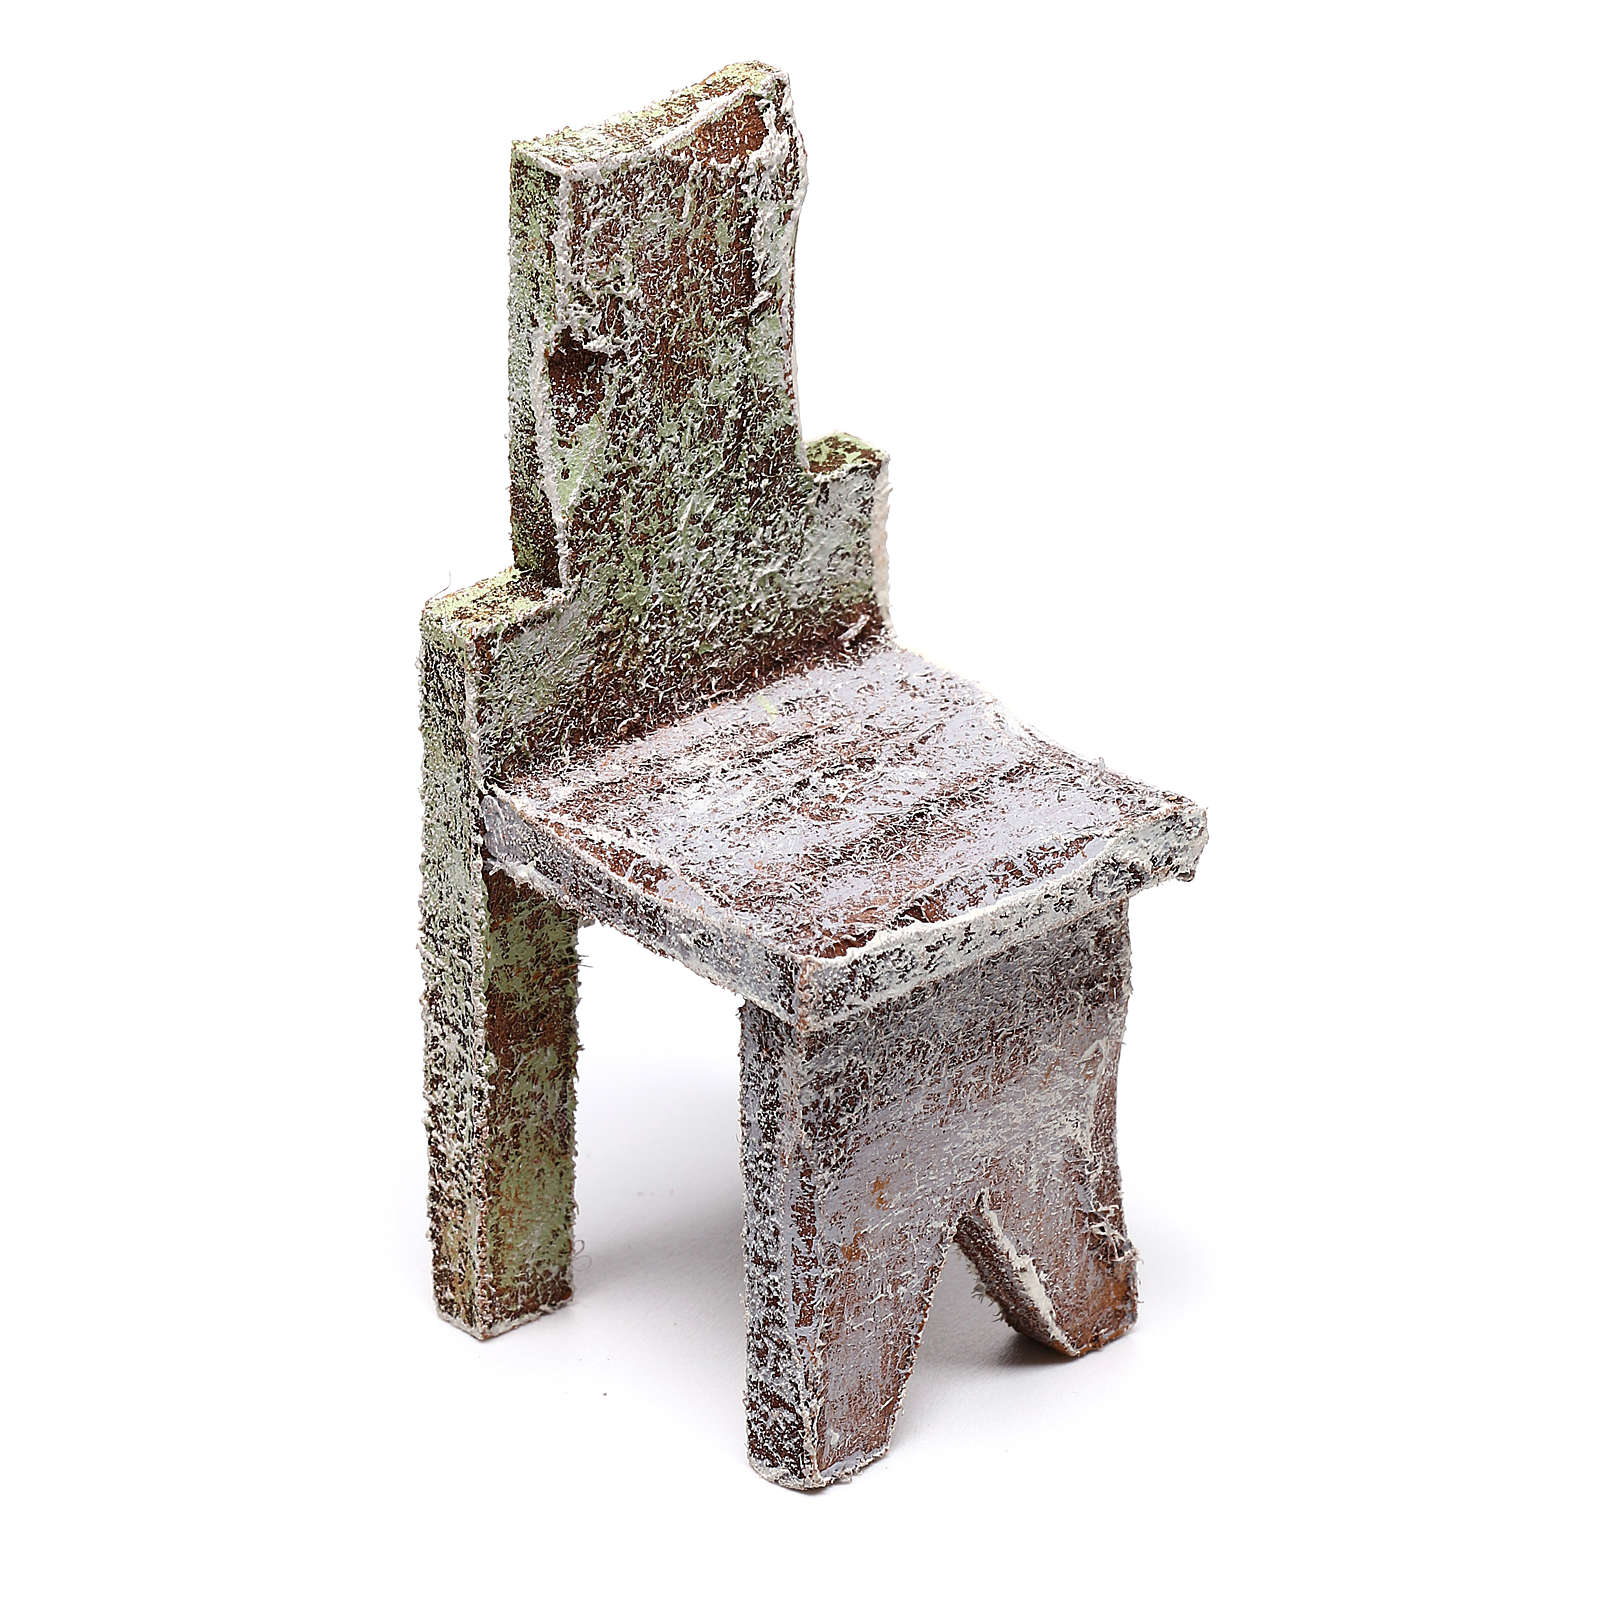 Miniature chair 5x5x5 cm, for 12 cm nativity 4